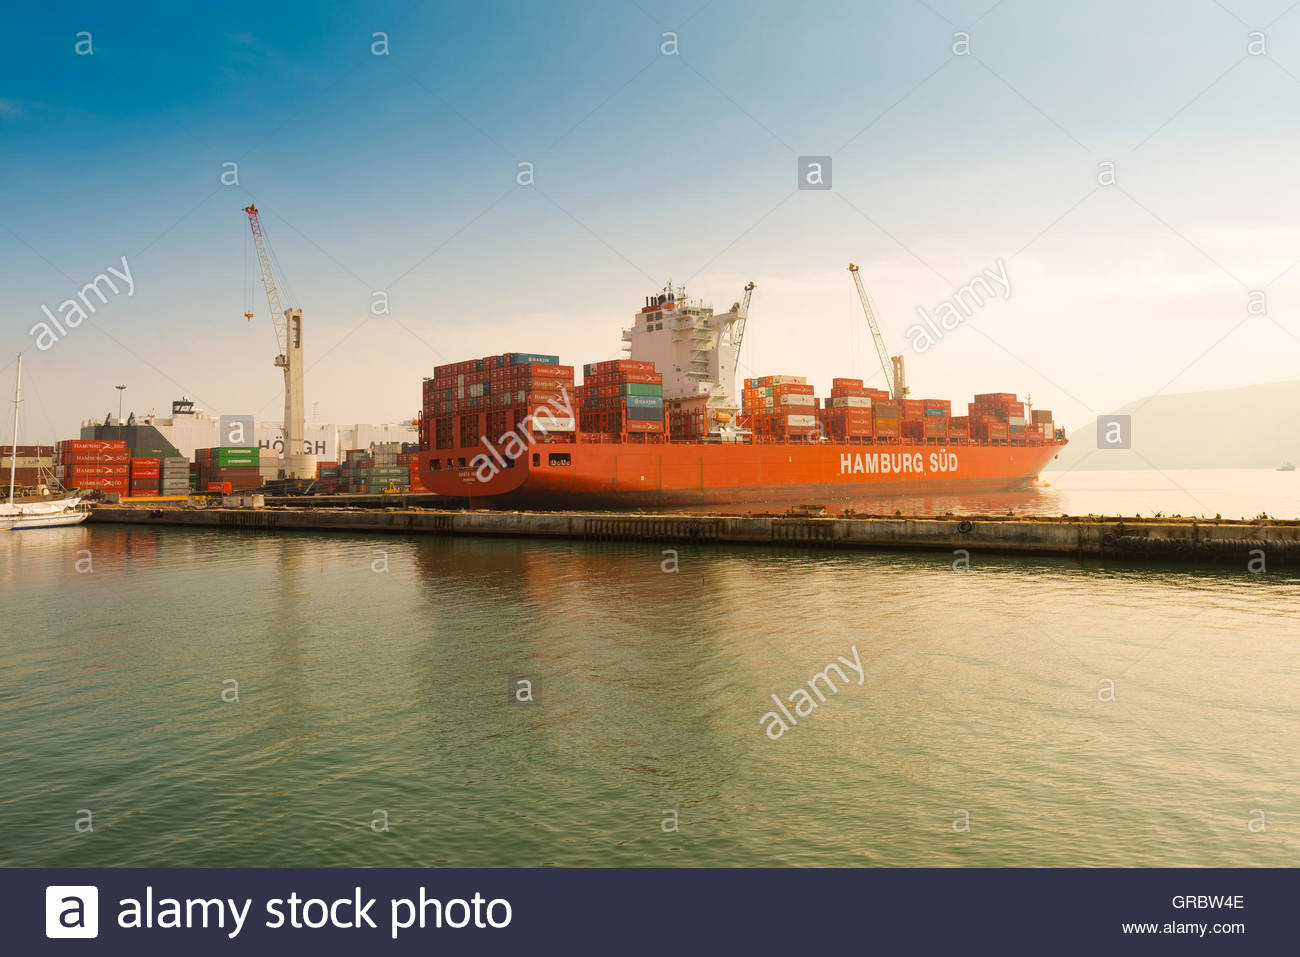 Cargo ship loaded with containers at port of Iquique, Chile - Stock Image